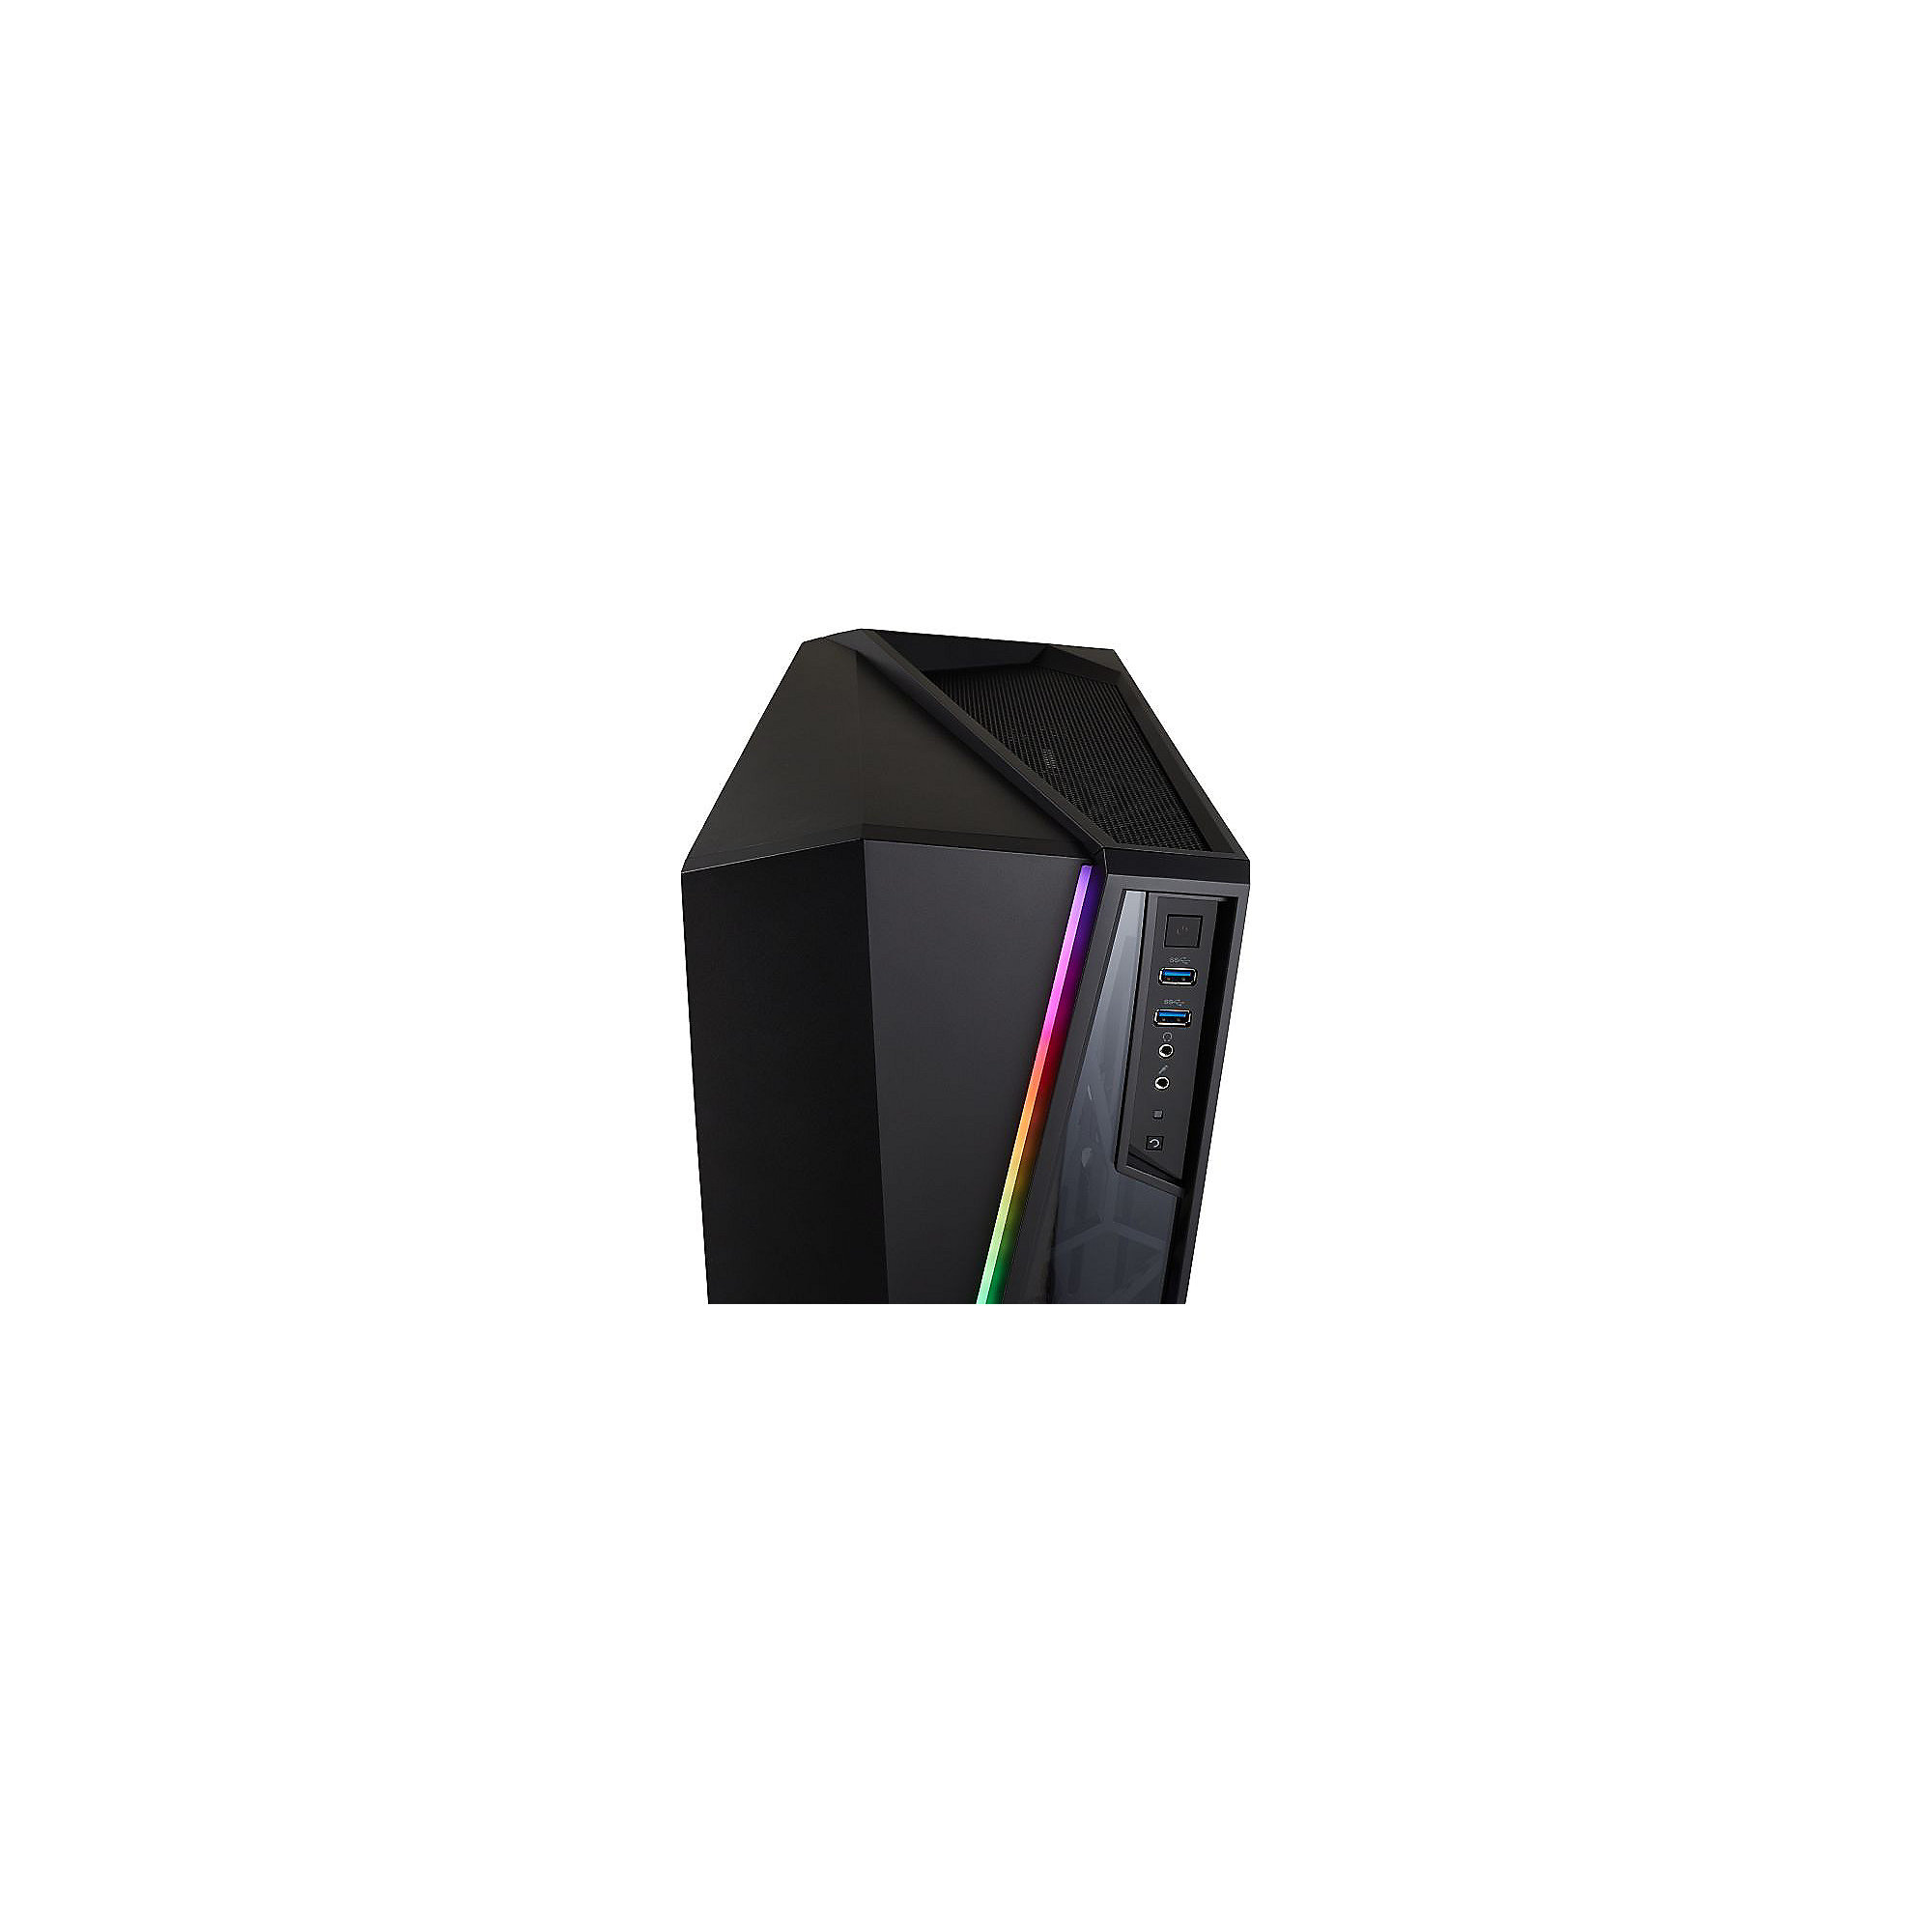 Corsair Carbide SPEC-OMEGA RGB Midi Tower Gaming Gehäuse TG Seitenfenster